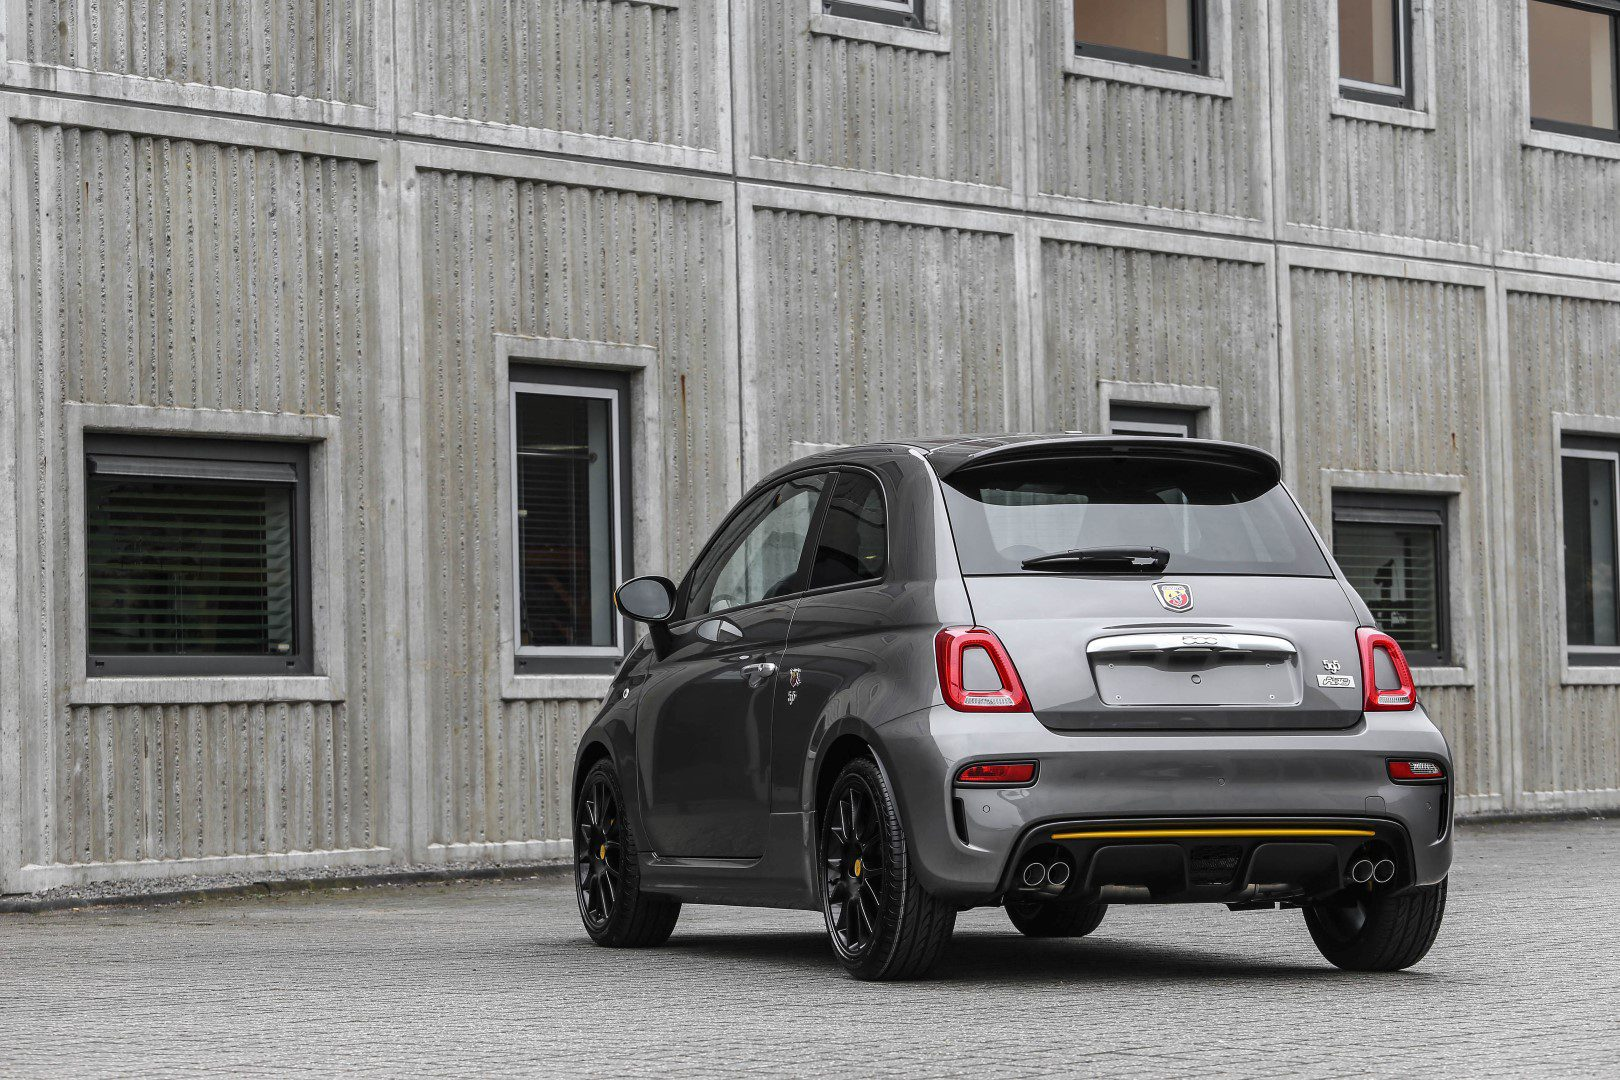 dit kost de gelimiteerde abarth 595 pista. Black Bedroom Furniture Sets. Home Design Ideas